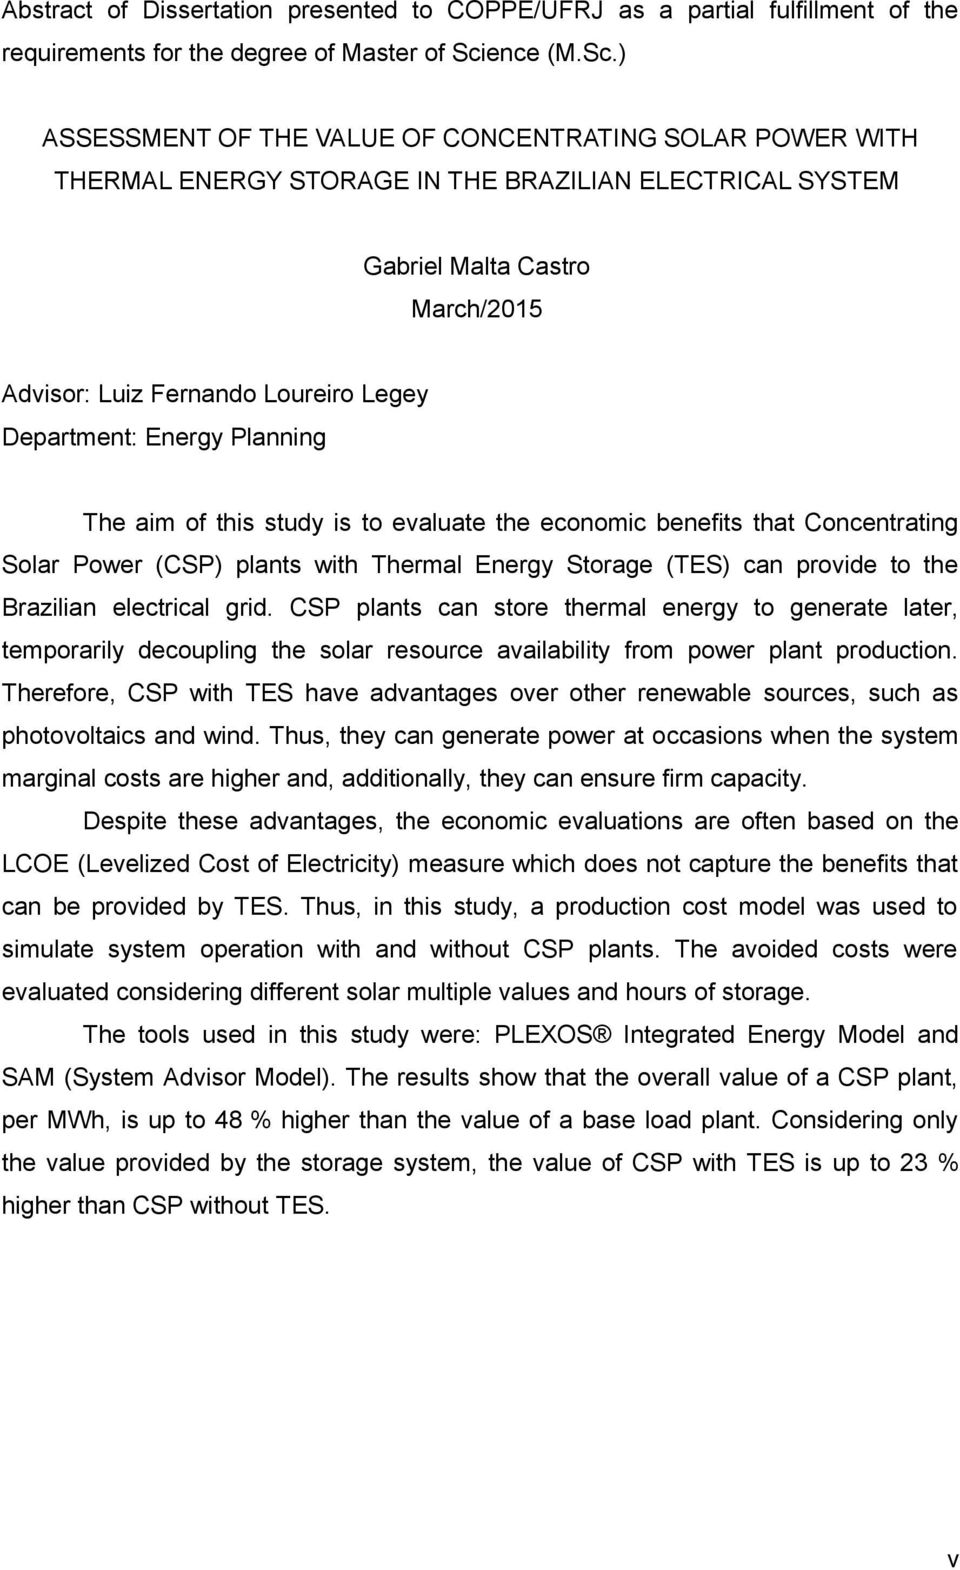 ) ASSESSMENT OF THE VALUE OF CONCENTRATING SOLAR POWER WITH THERMAL ENERGY STORAGE IN THE BRAZILIAN ELECTRICAL SYSTEM Gabriel Malta Castro March/2015 Advisor: Luiz Fernando Loureiro Legey Department: